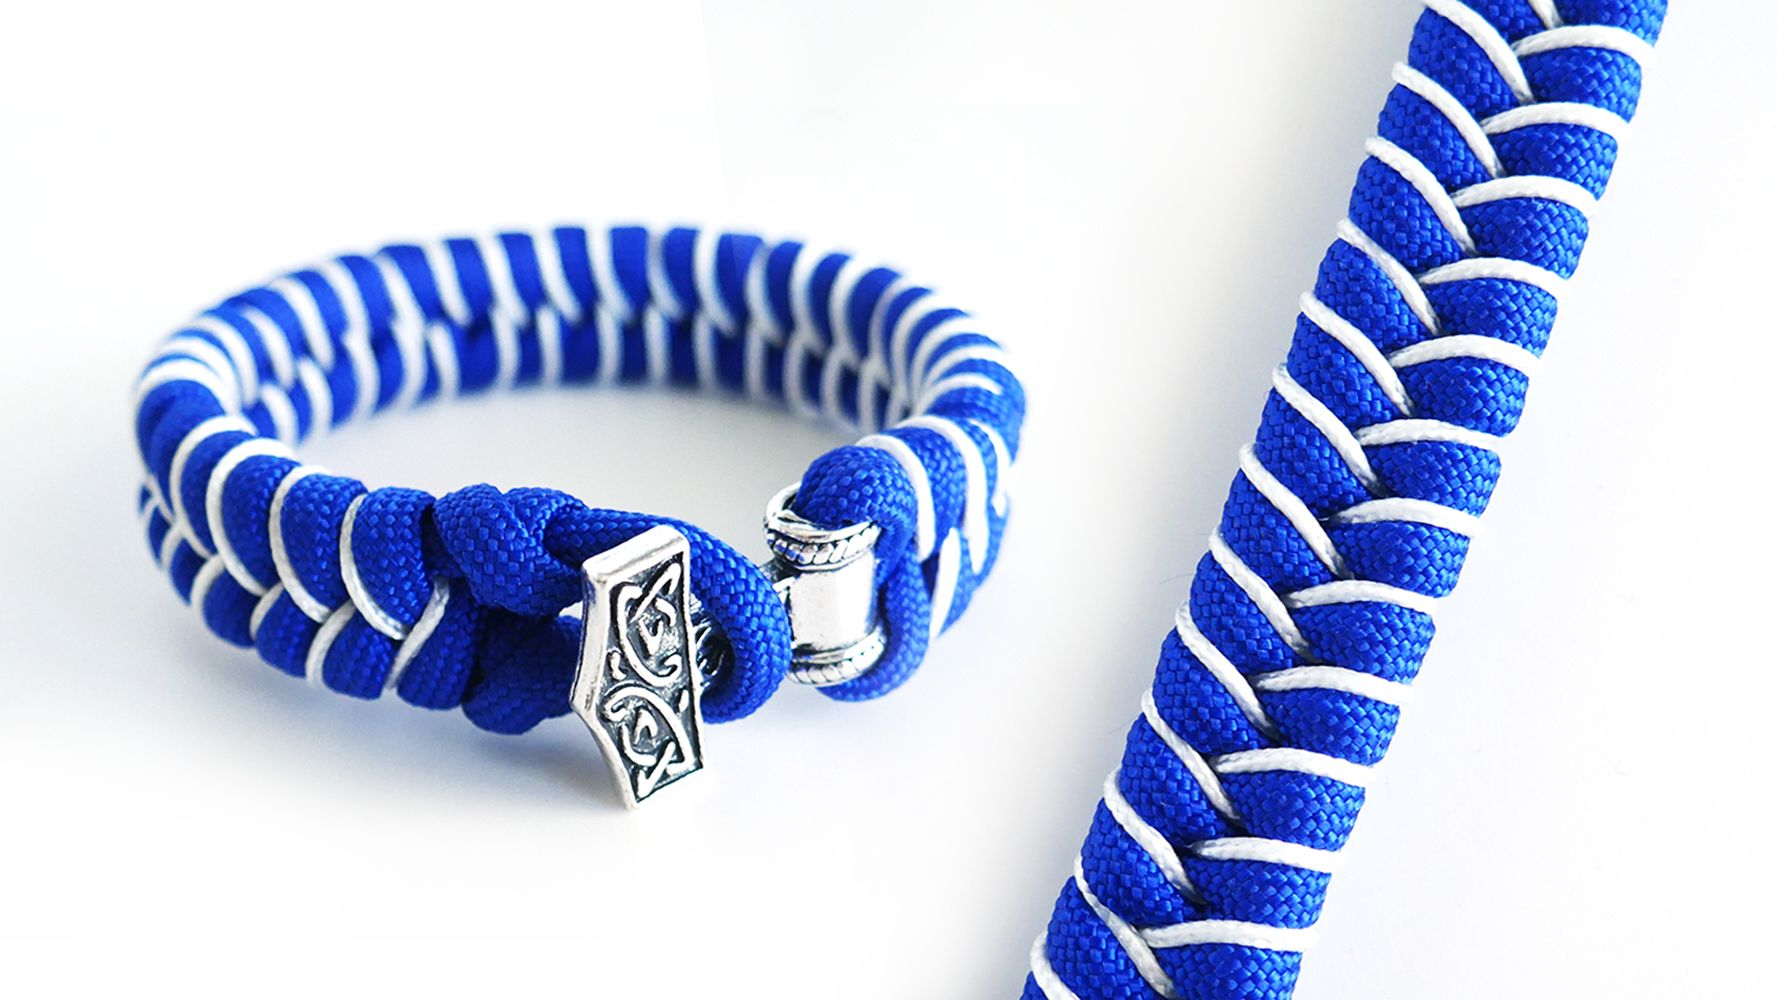 How To Make A Stitched Fishtail Paracord Bracelet Mjolnir Thor S